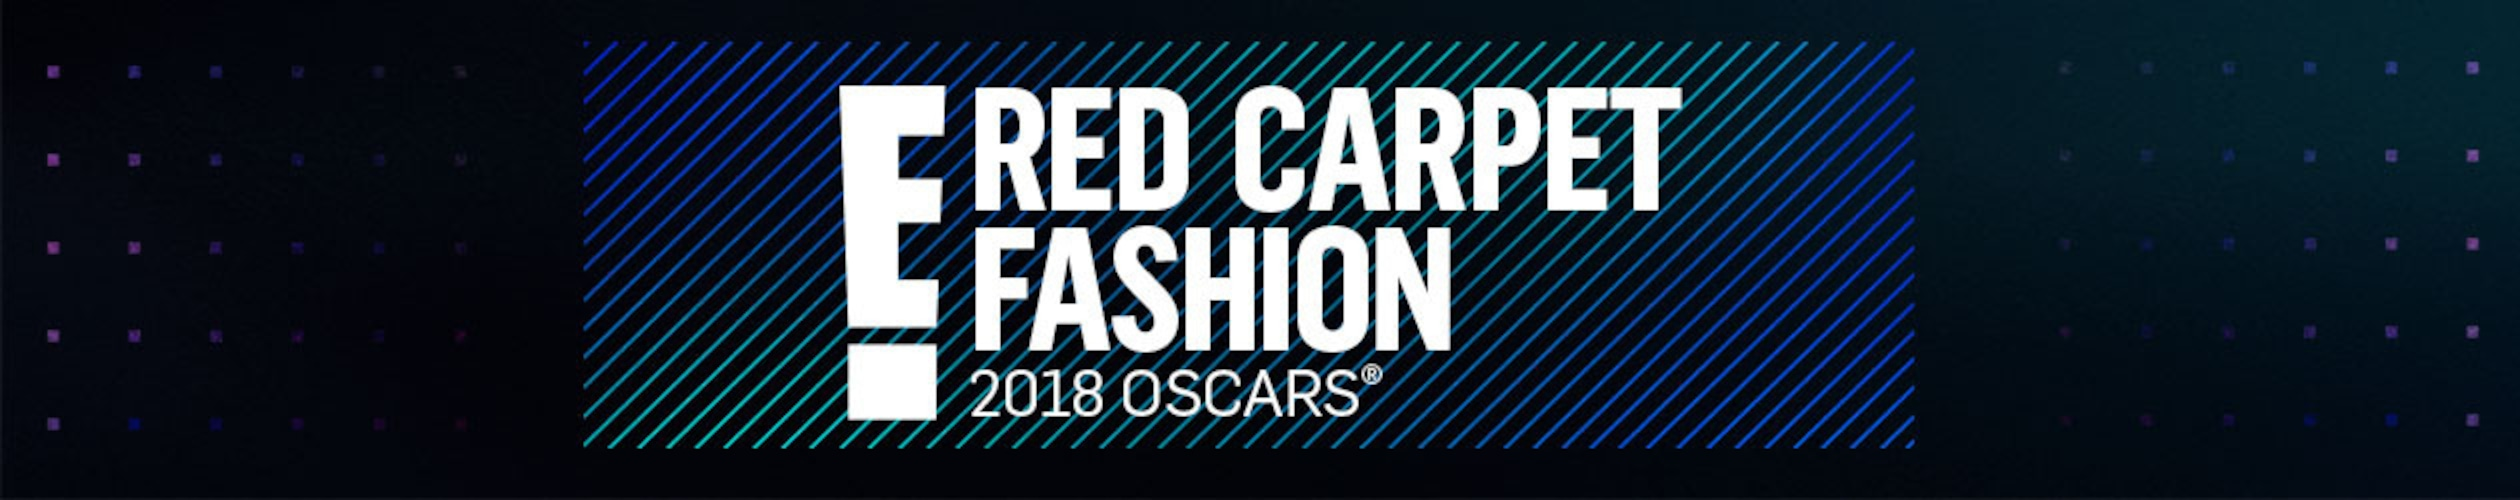 AU_OscarsRedCarpetFashion_Desktop